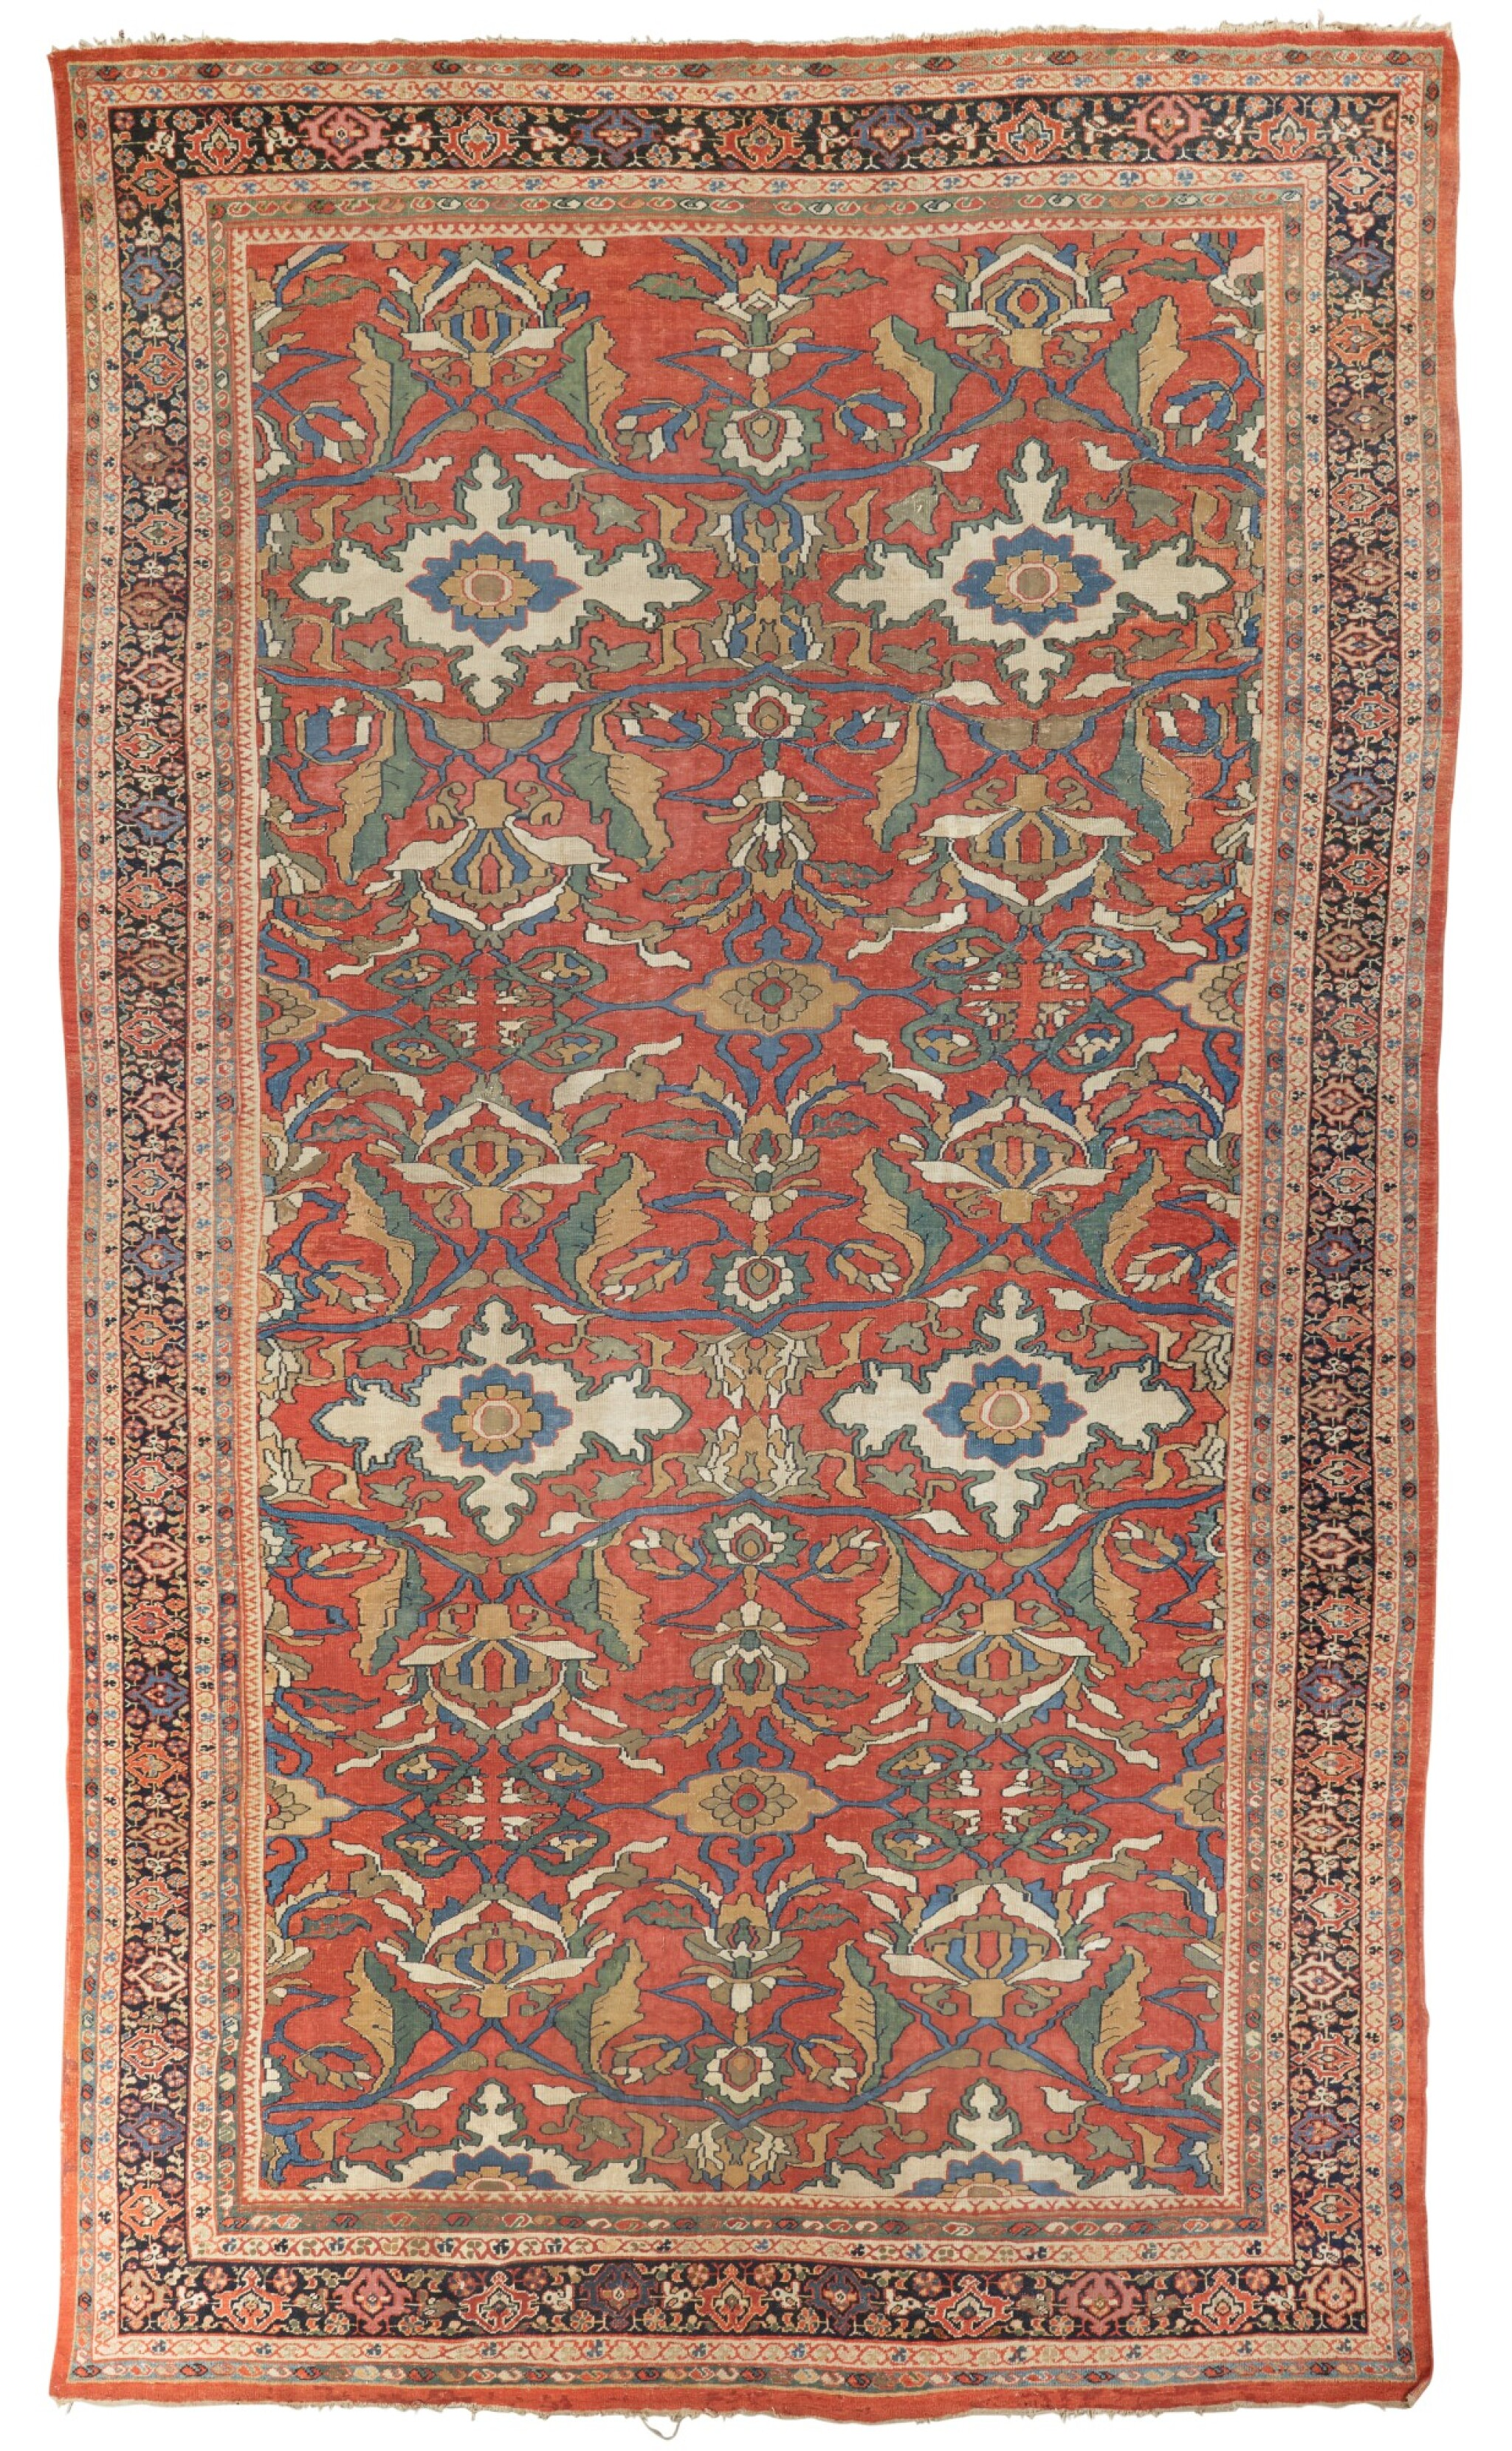 View full screen - View 1 of Lot 10. A 'Ziegler' Mahal carpet, Northwest Persia, late 19th/early 20th century.